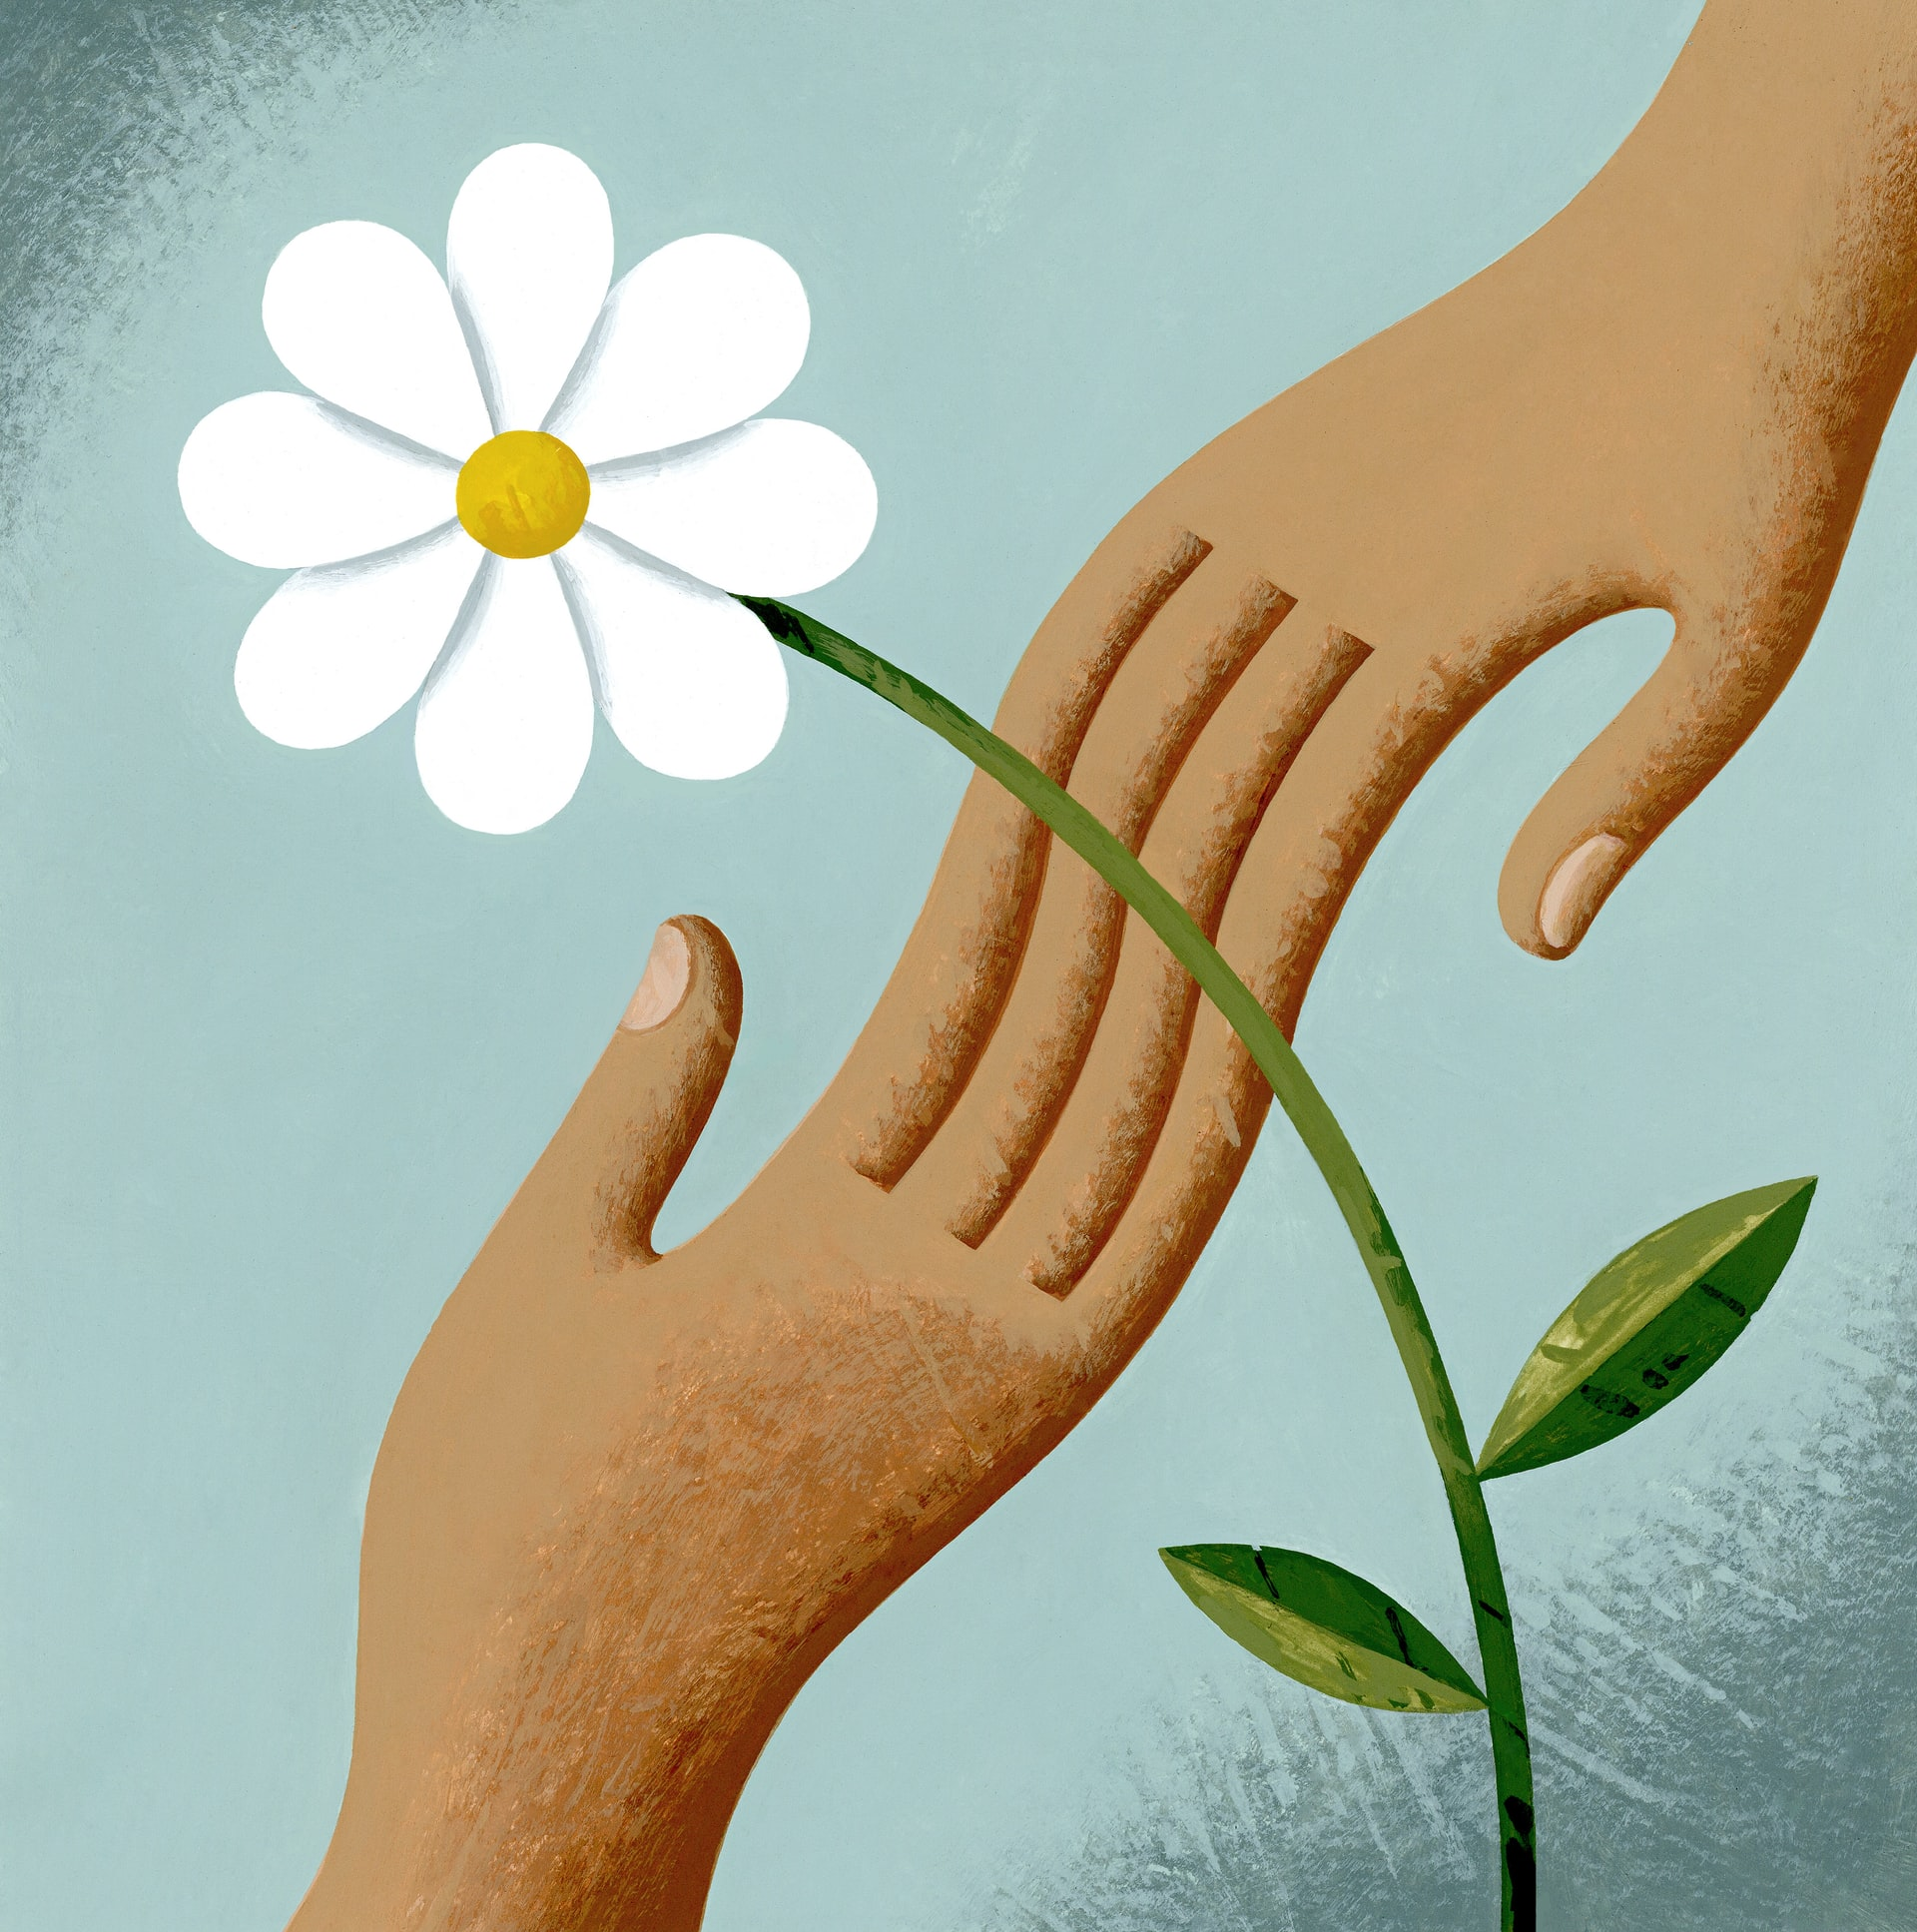 An illustration of two helping hands and a white flower